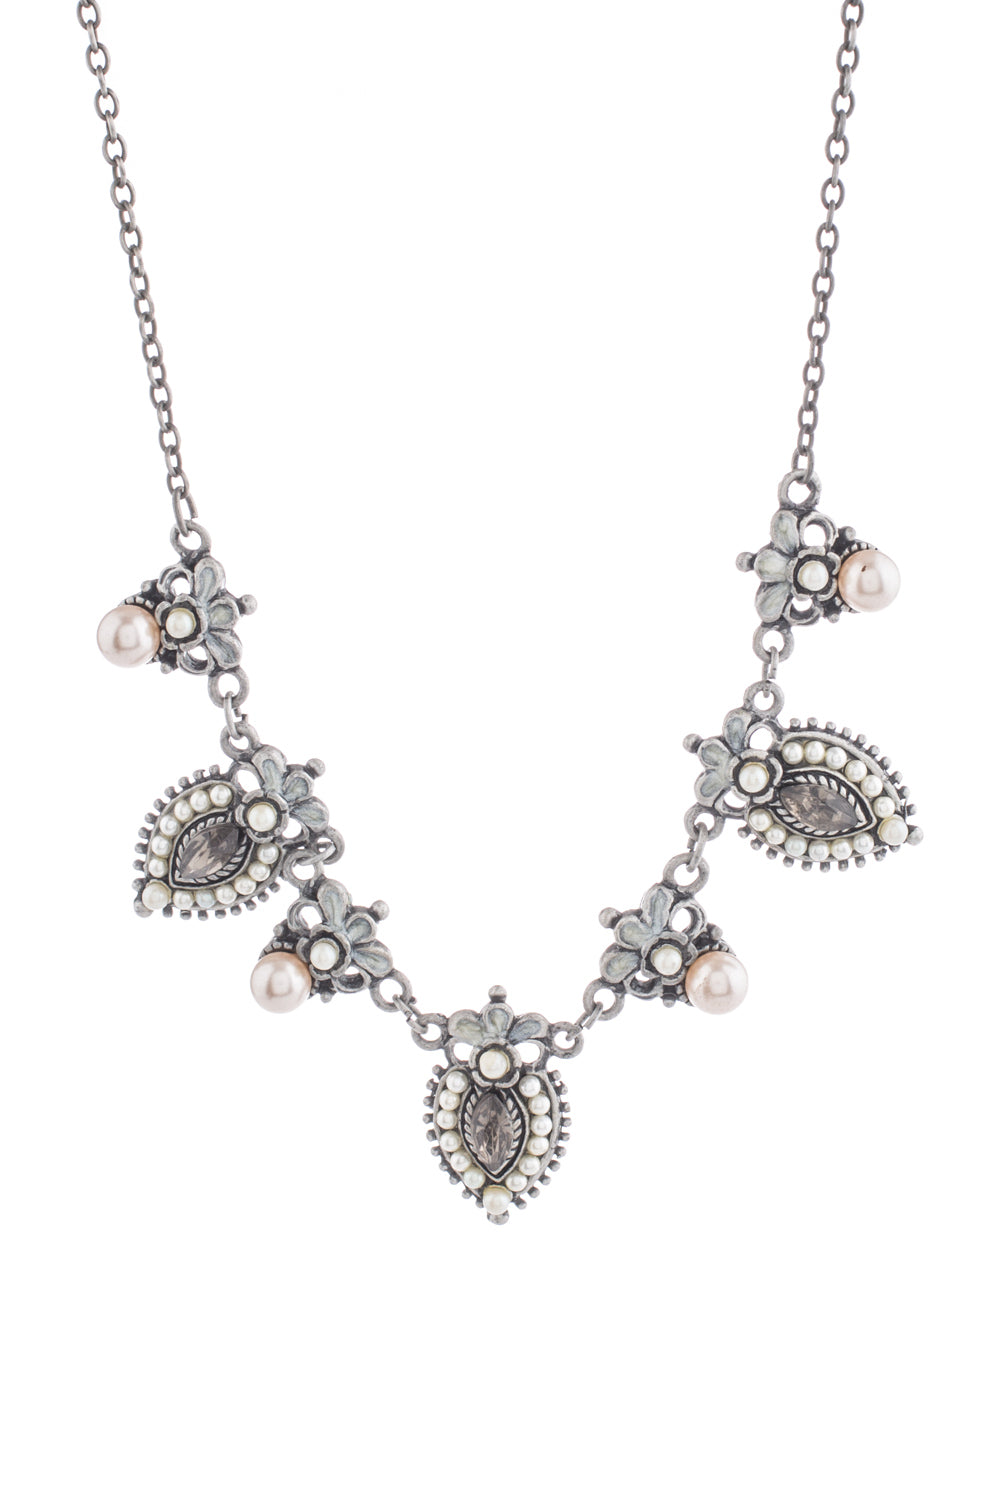 Type 2 Highclere Necklace